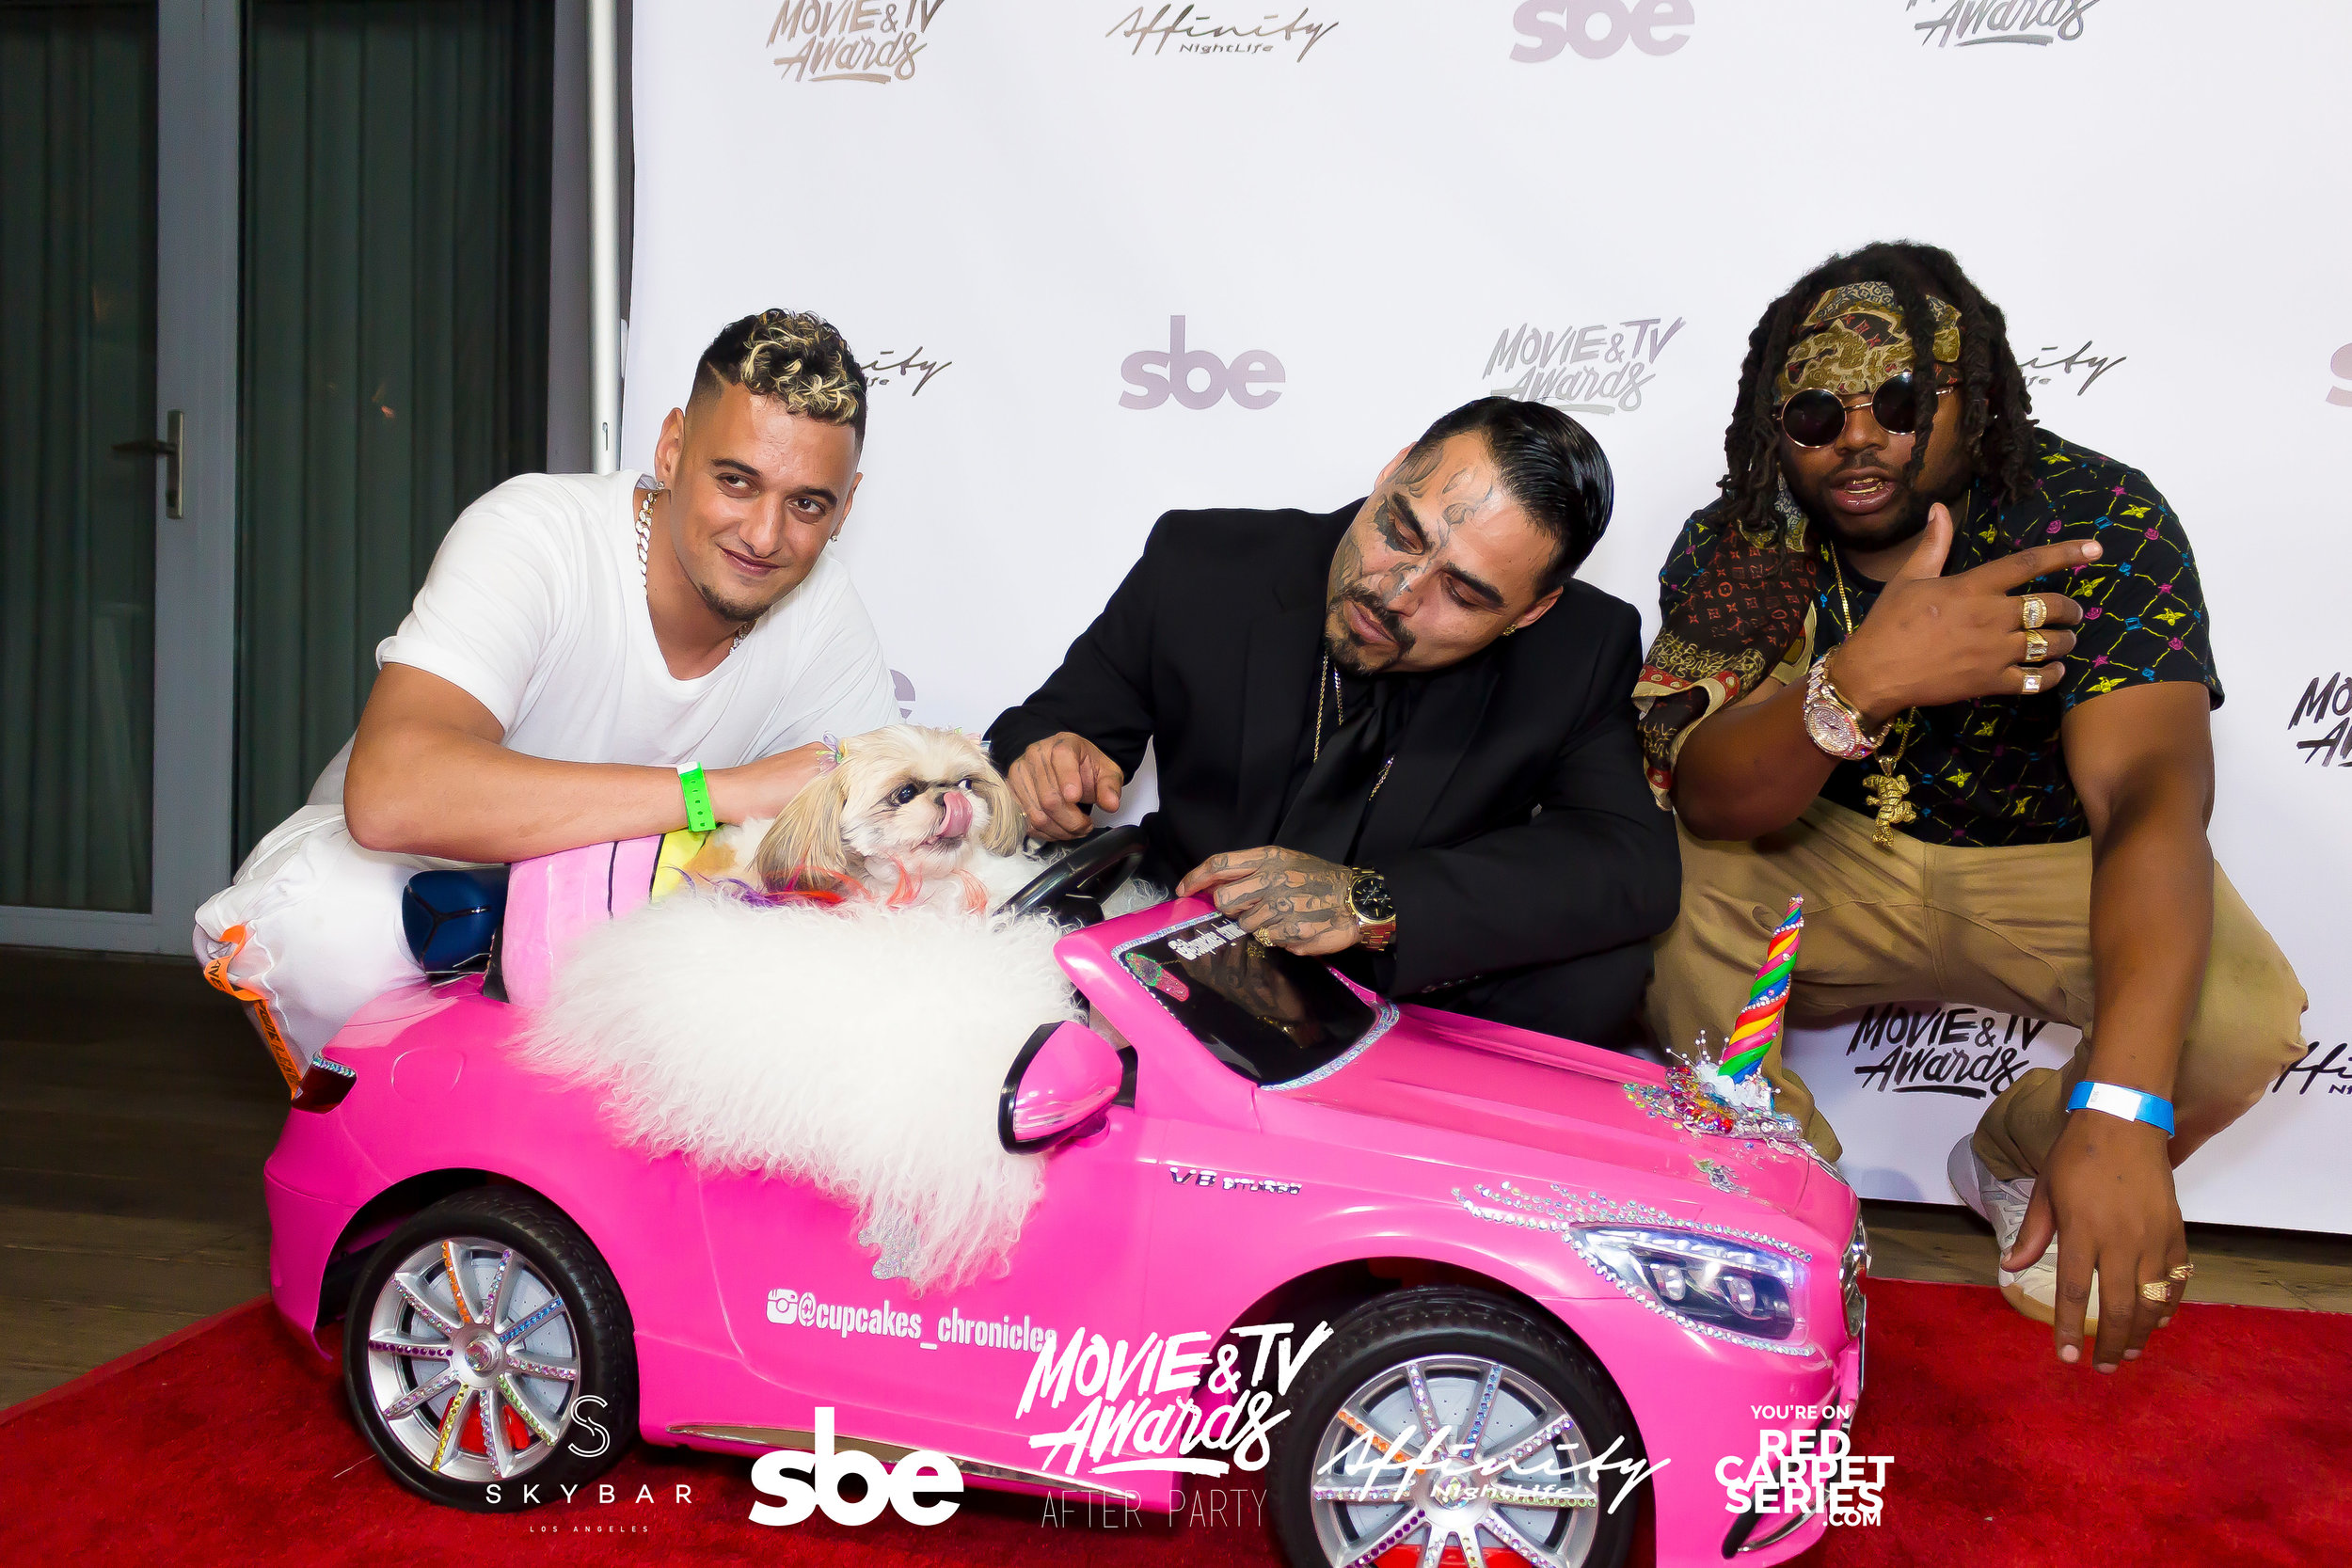 Affinity Nightlife MTV Movie & TV Awards After Party - Skybar at Mondrian - 06-15-19 - Vol. 2_122.jpg